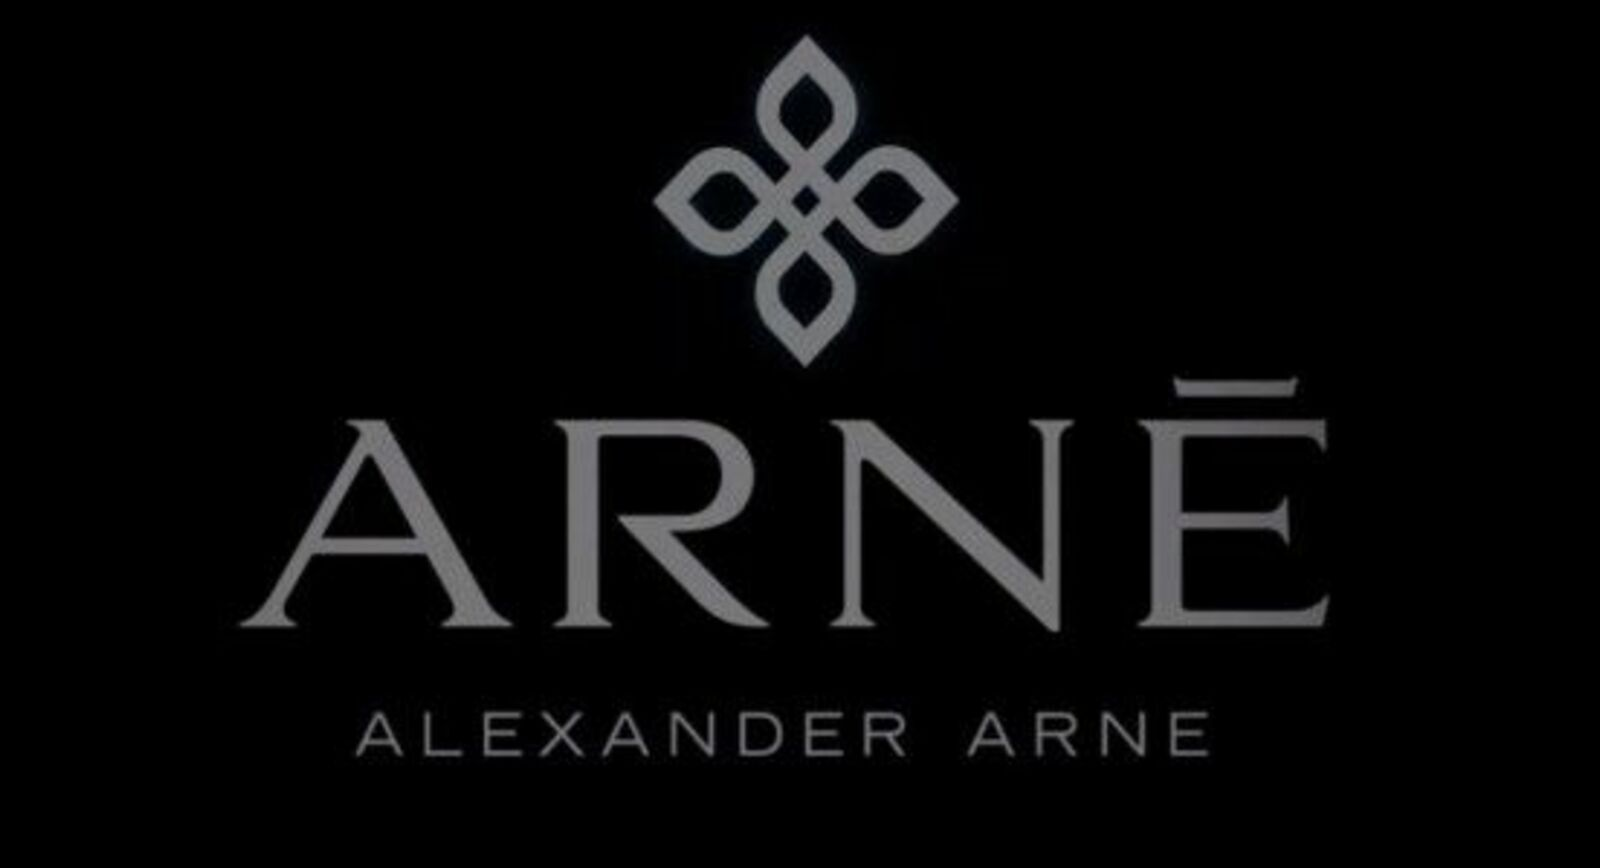 Alexander ARNE: a Russian Jeweller with the European Approach